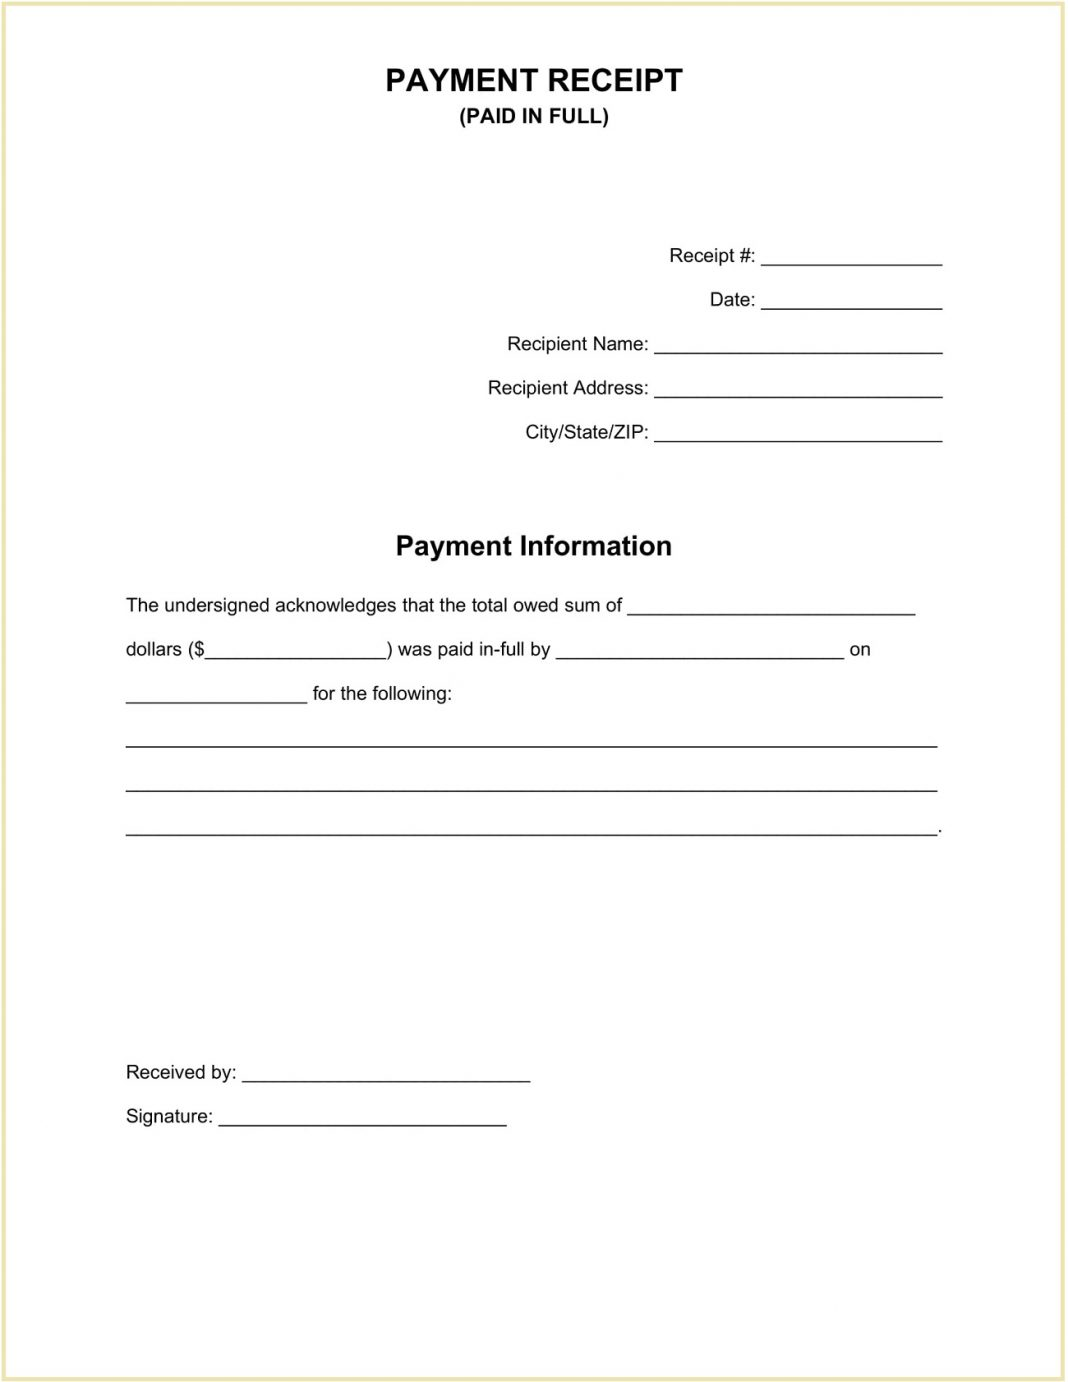 Paid In Full Receipt Form Word Template Payment Pdf Cash Of Free  (in-full) Example Large